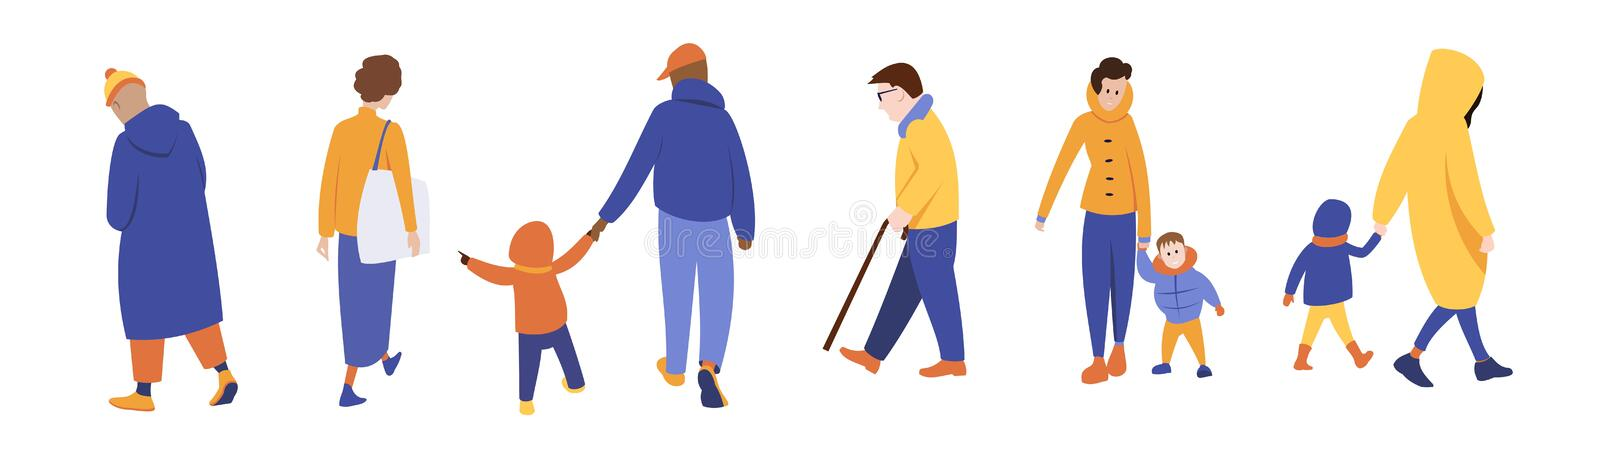 A group of people in outerwear stock illustration